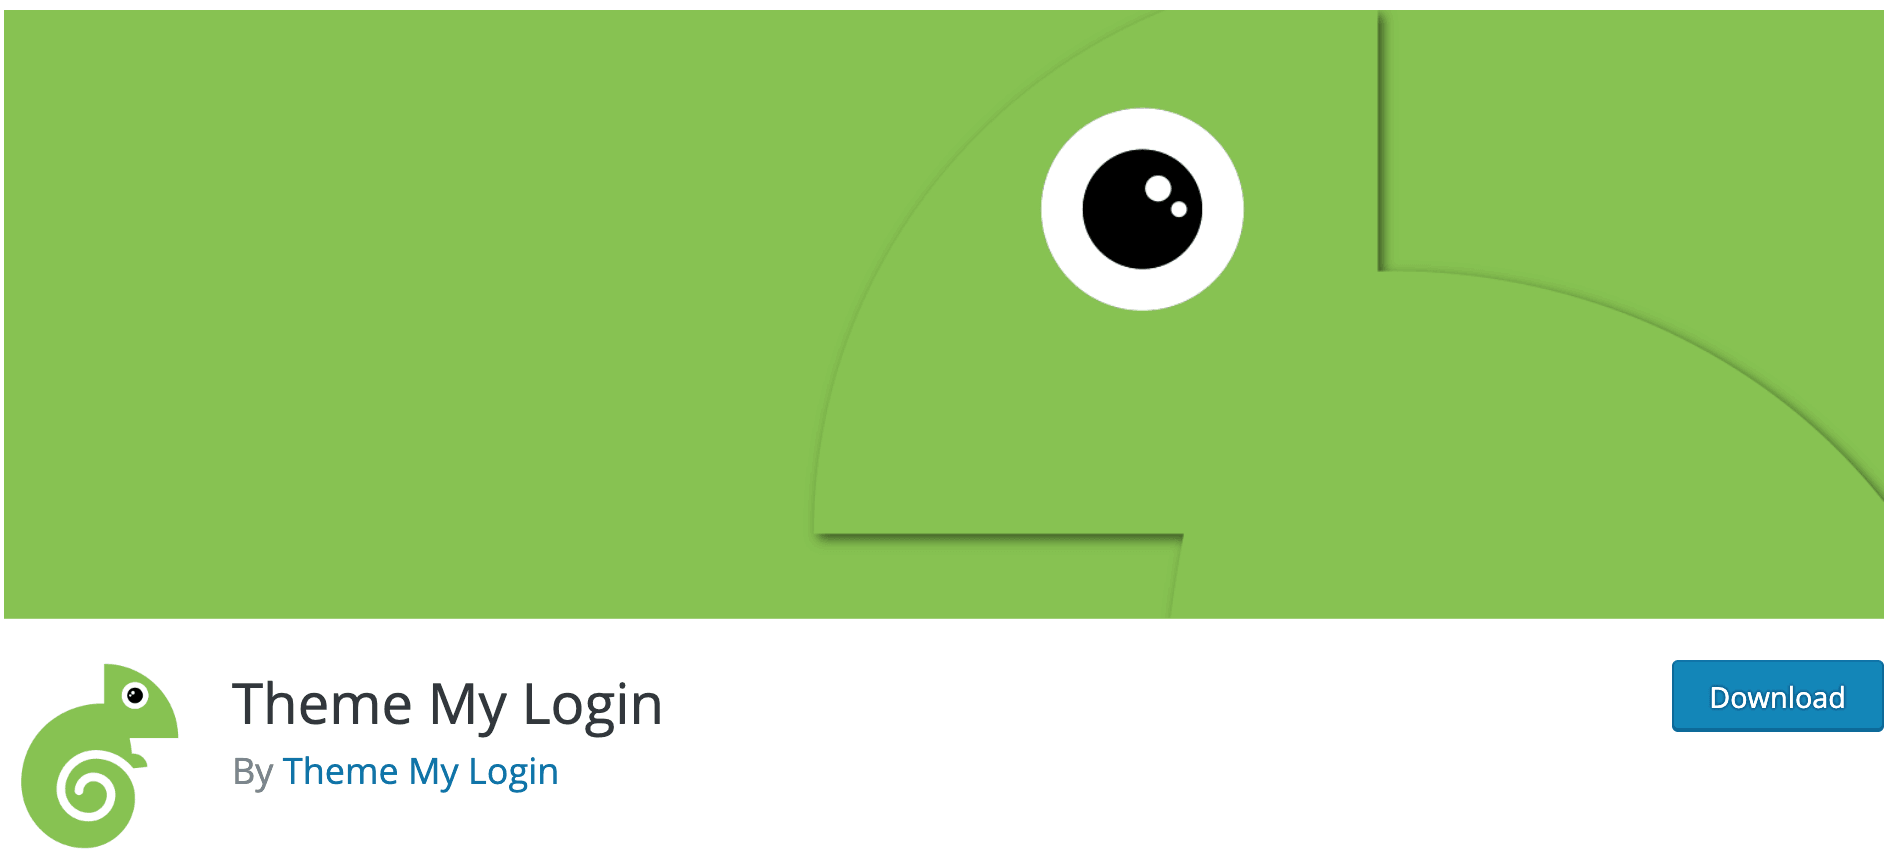 Theme My Login